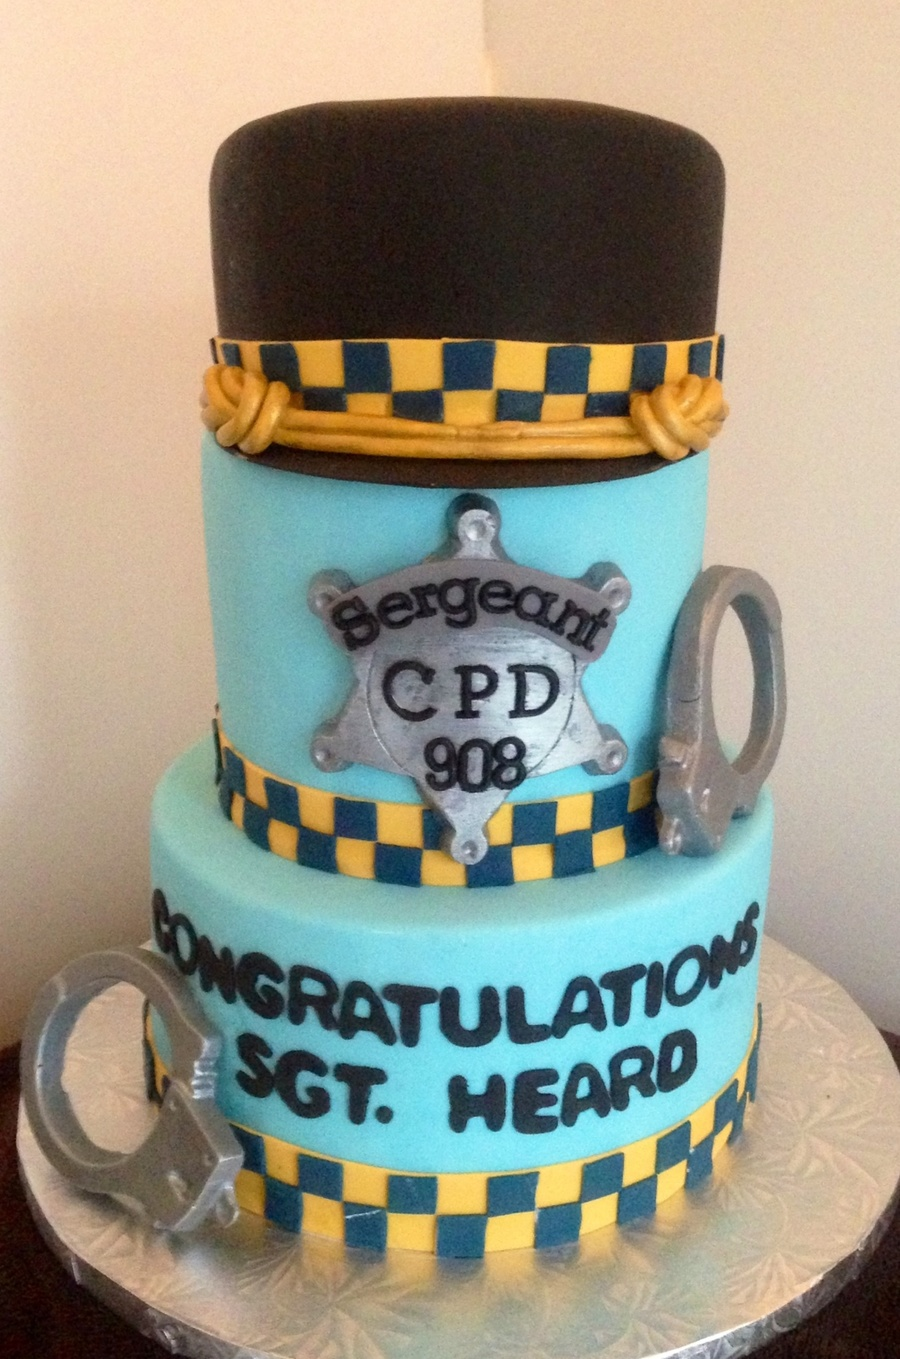 Top Hat Is Made Of Cake And Carved To Resemble Sergeant Hat For The Chicago Police Dept Badge And Cuffs Are Made Of Fondant And Painted Wit... on Cake Central